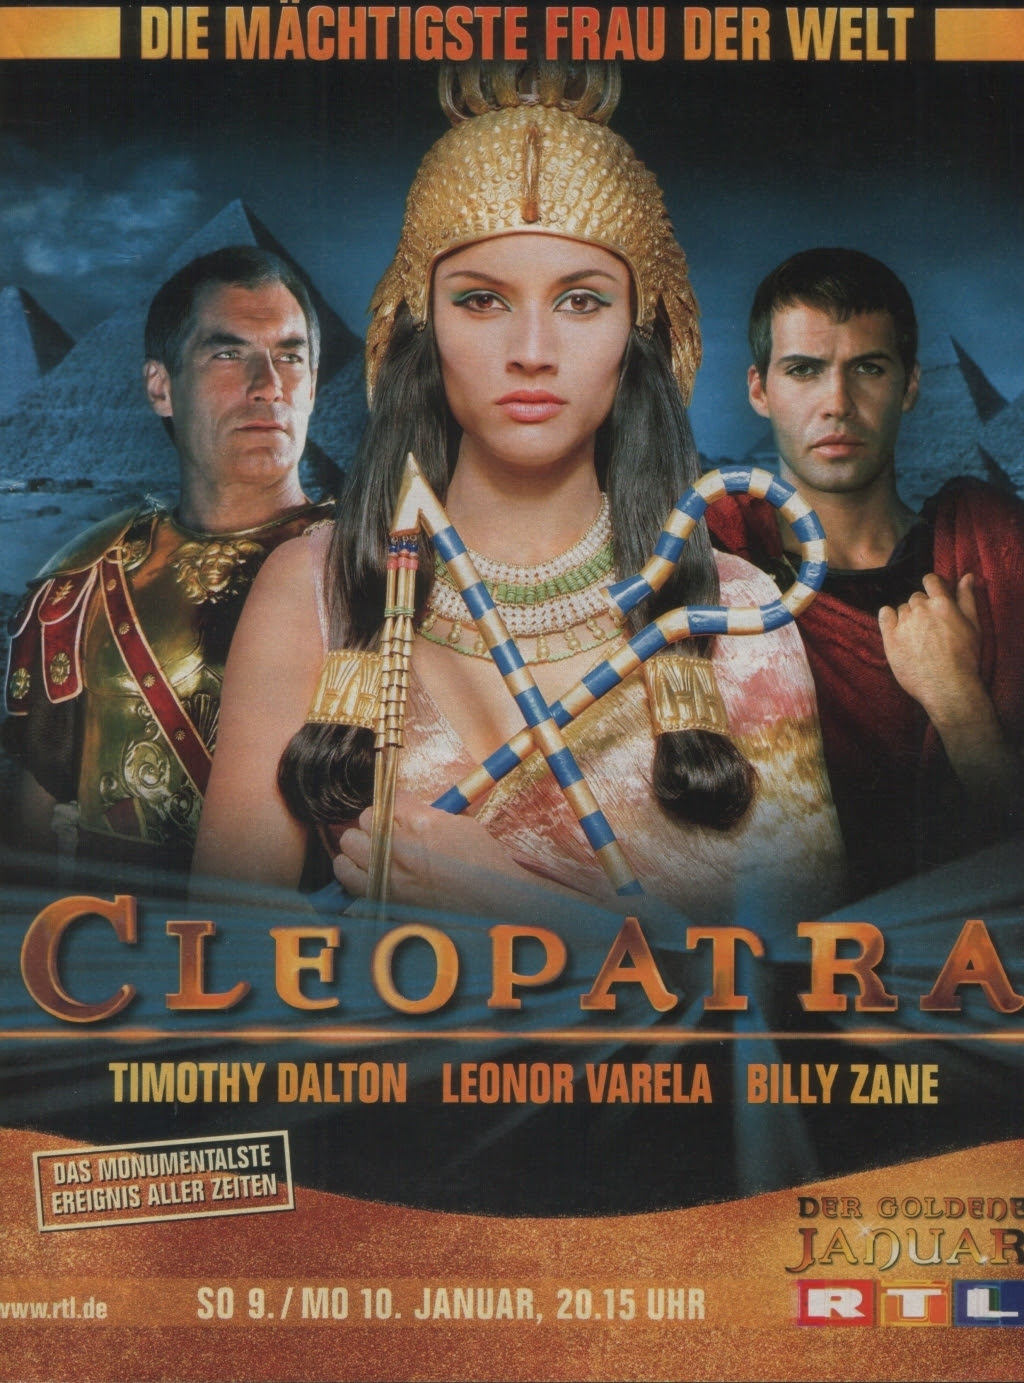 Cleopatra Cleopatra 1999 Photo 19745248 Fanpop Images, Photos, Reviews